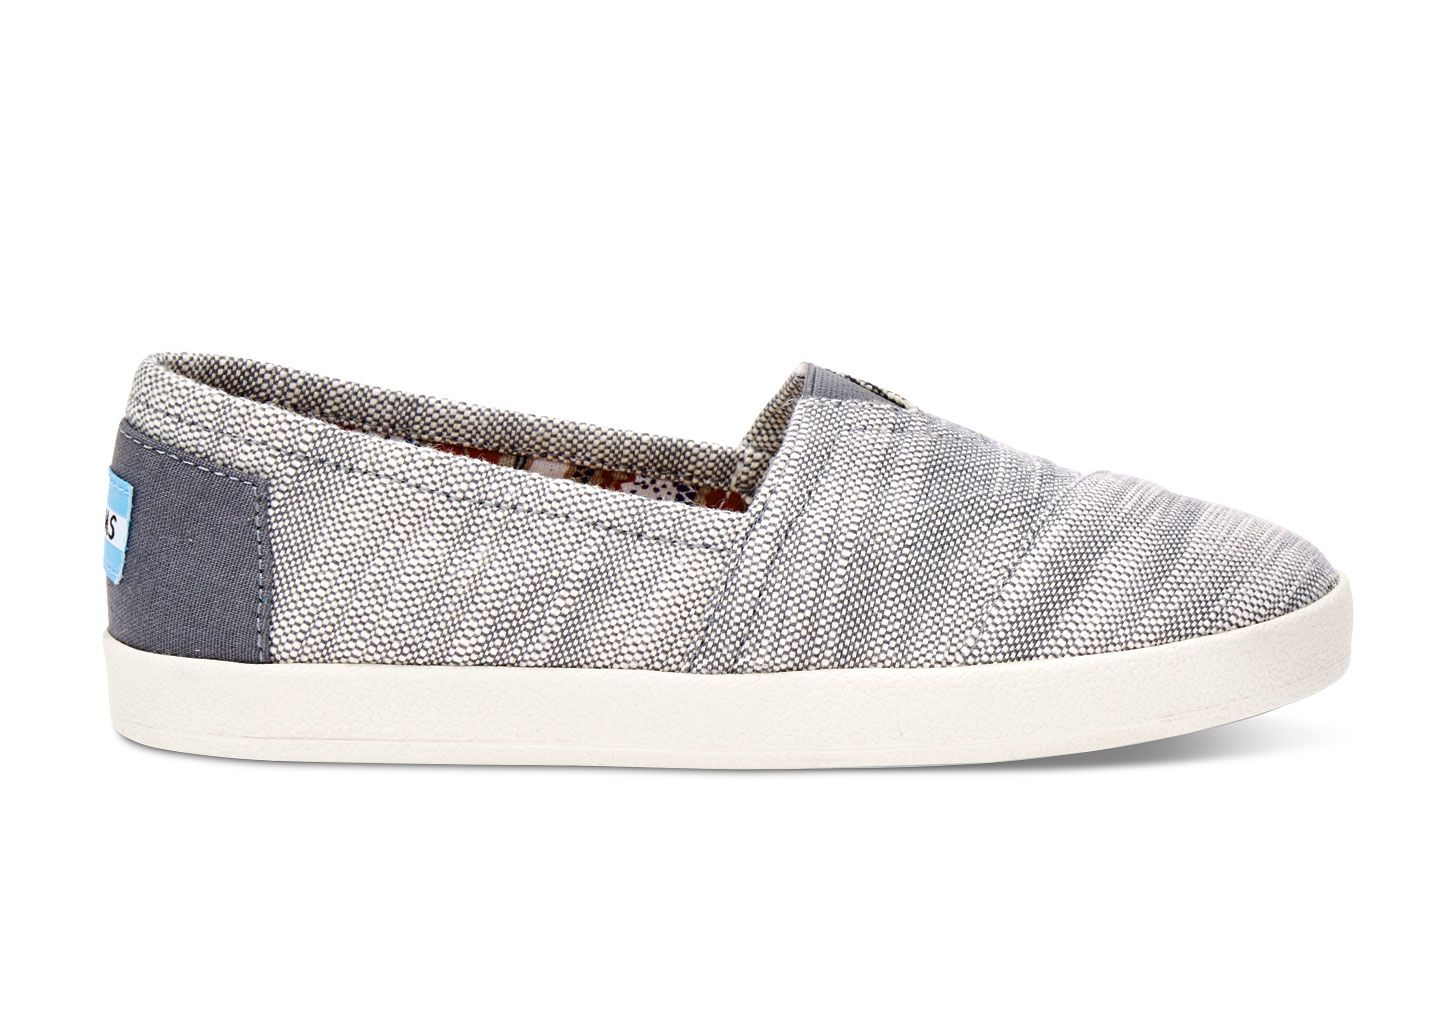 The Avalon features all the slip-on goodness of TOMS Classics, with the  added